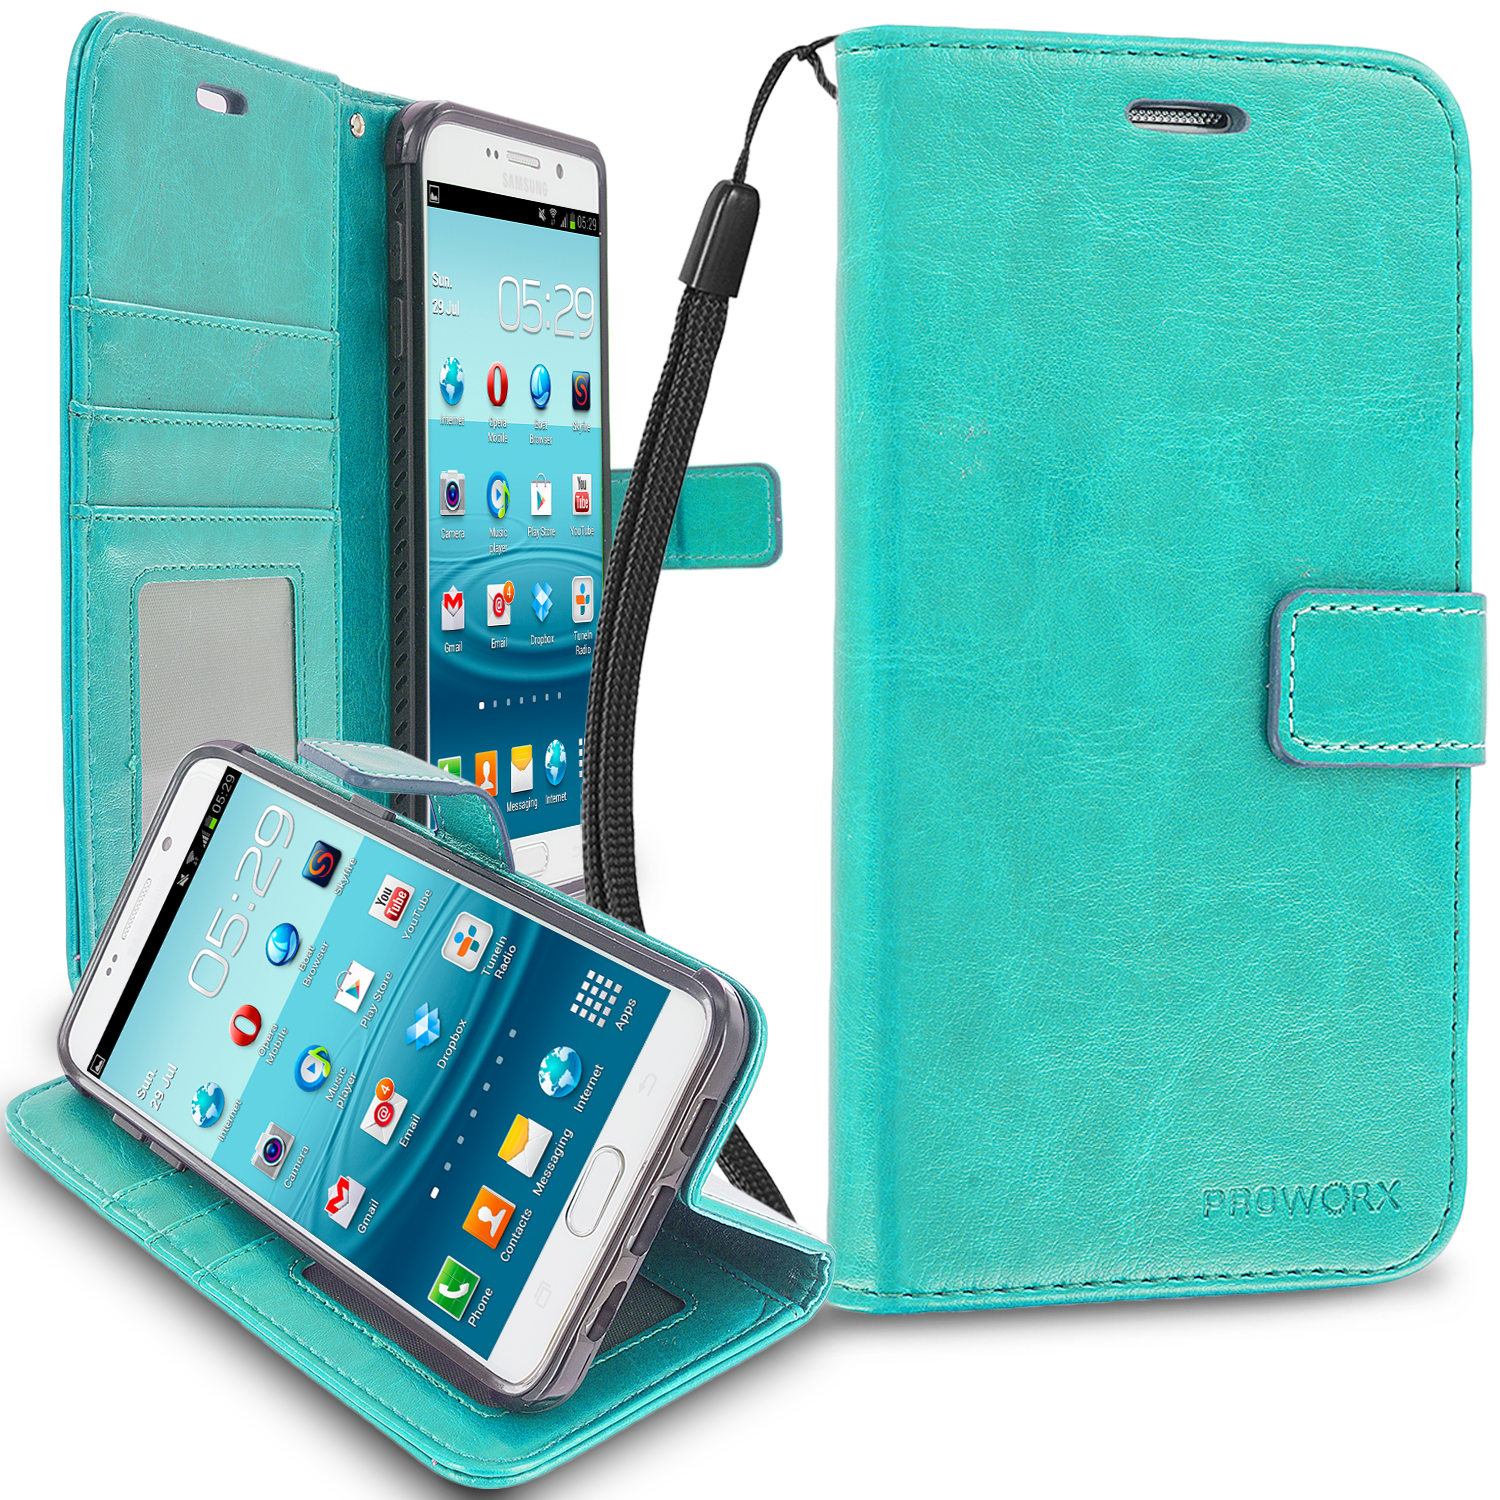 Samsung Galaxy S6 Edge Plus + Mint Green ProWorx Wallet Case Luxury PU Leather Case Cover With Card Slots & Stand